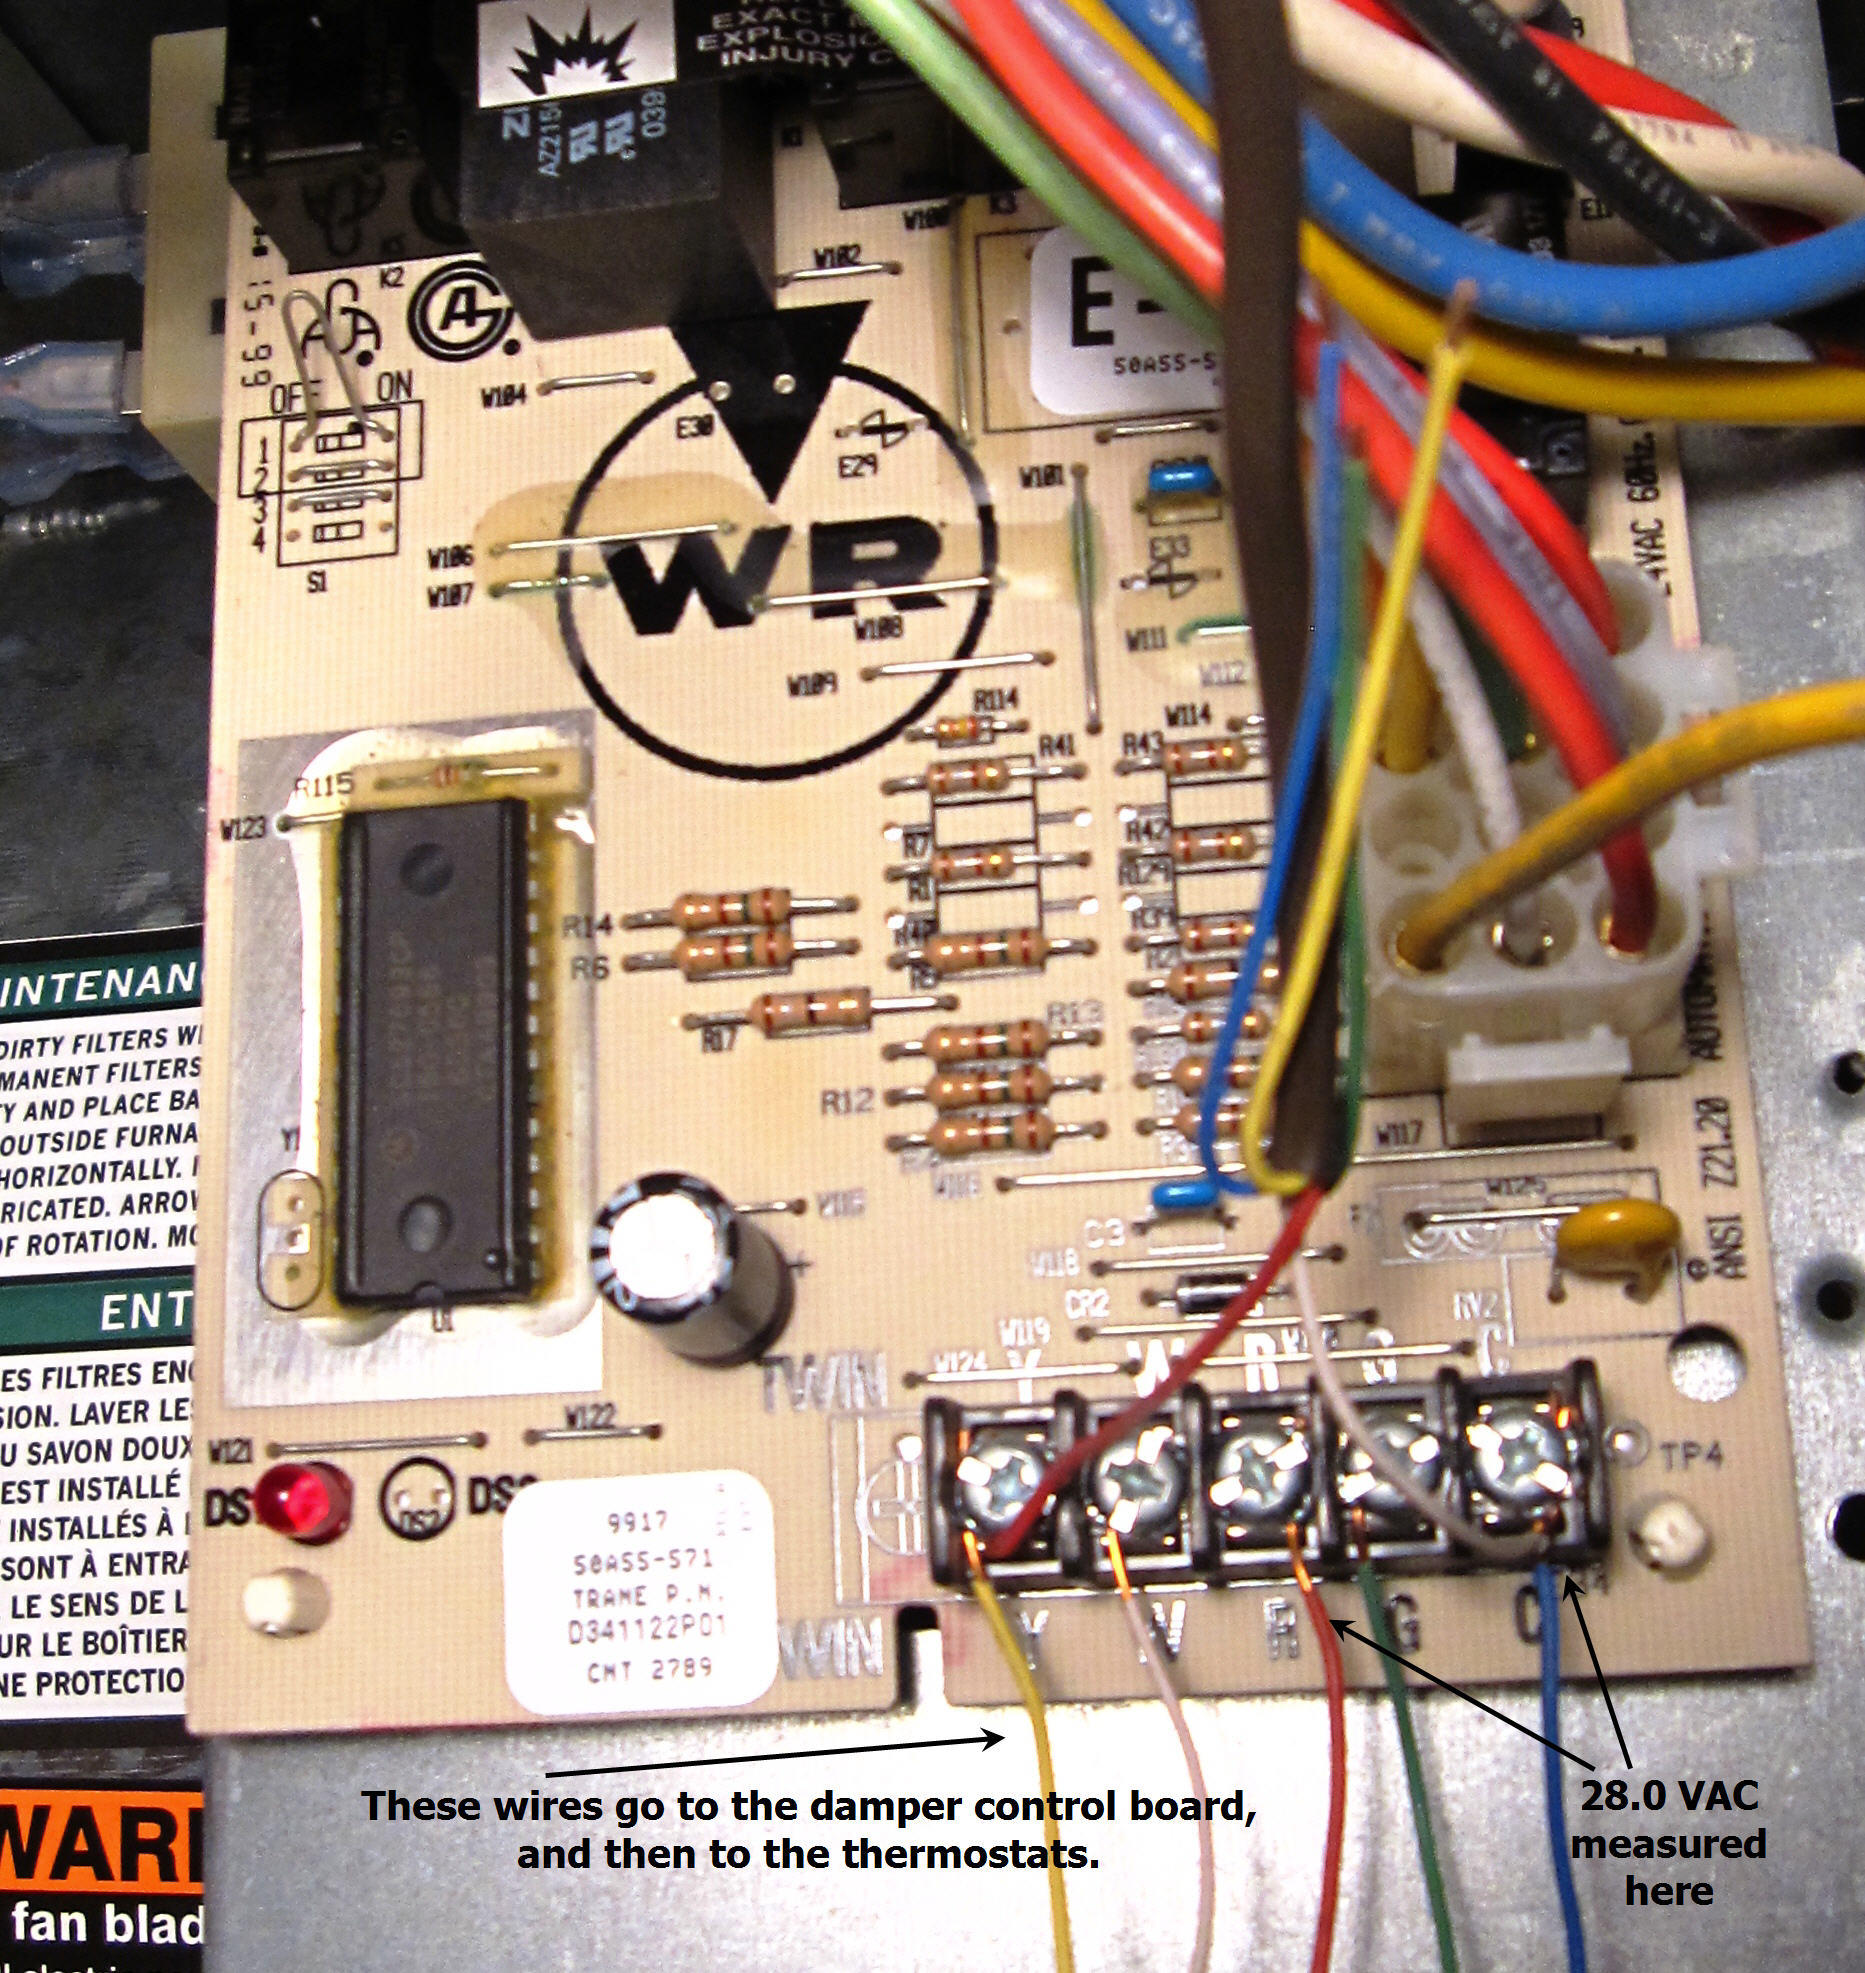 ruud thermostat wiring diagram wiring diagram Ruud Thermostat Wiring Diagram ruud thermostat wiring diagram merzie source wiring luxgeo ruud thermostat wiring diagram